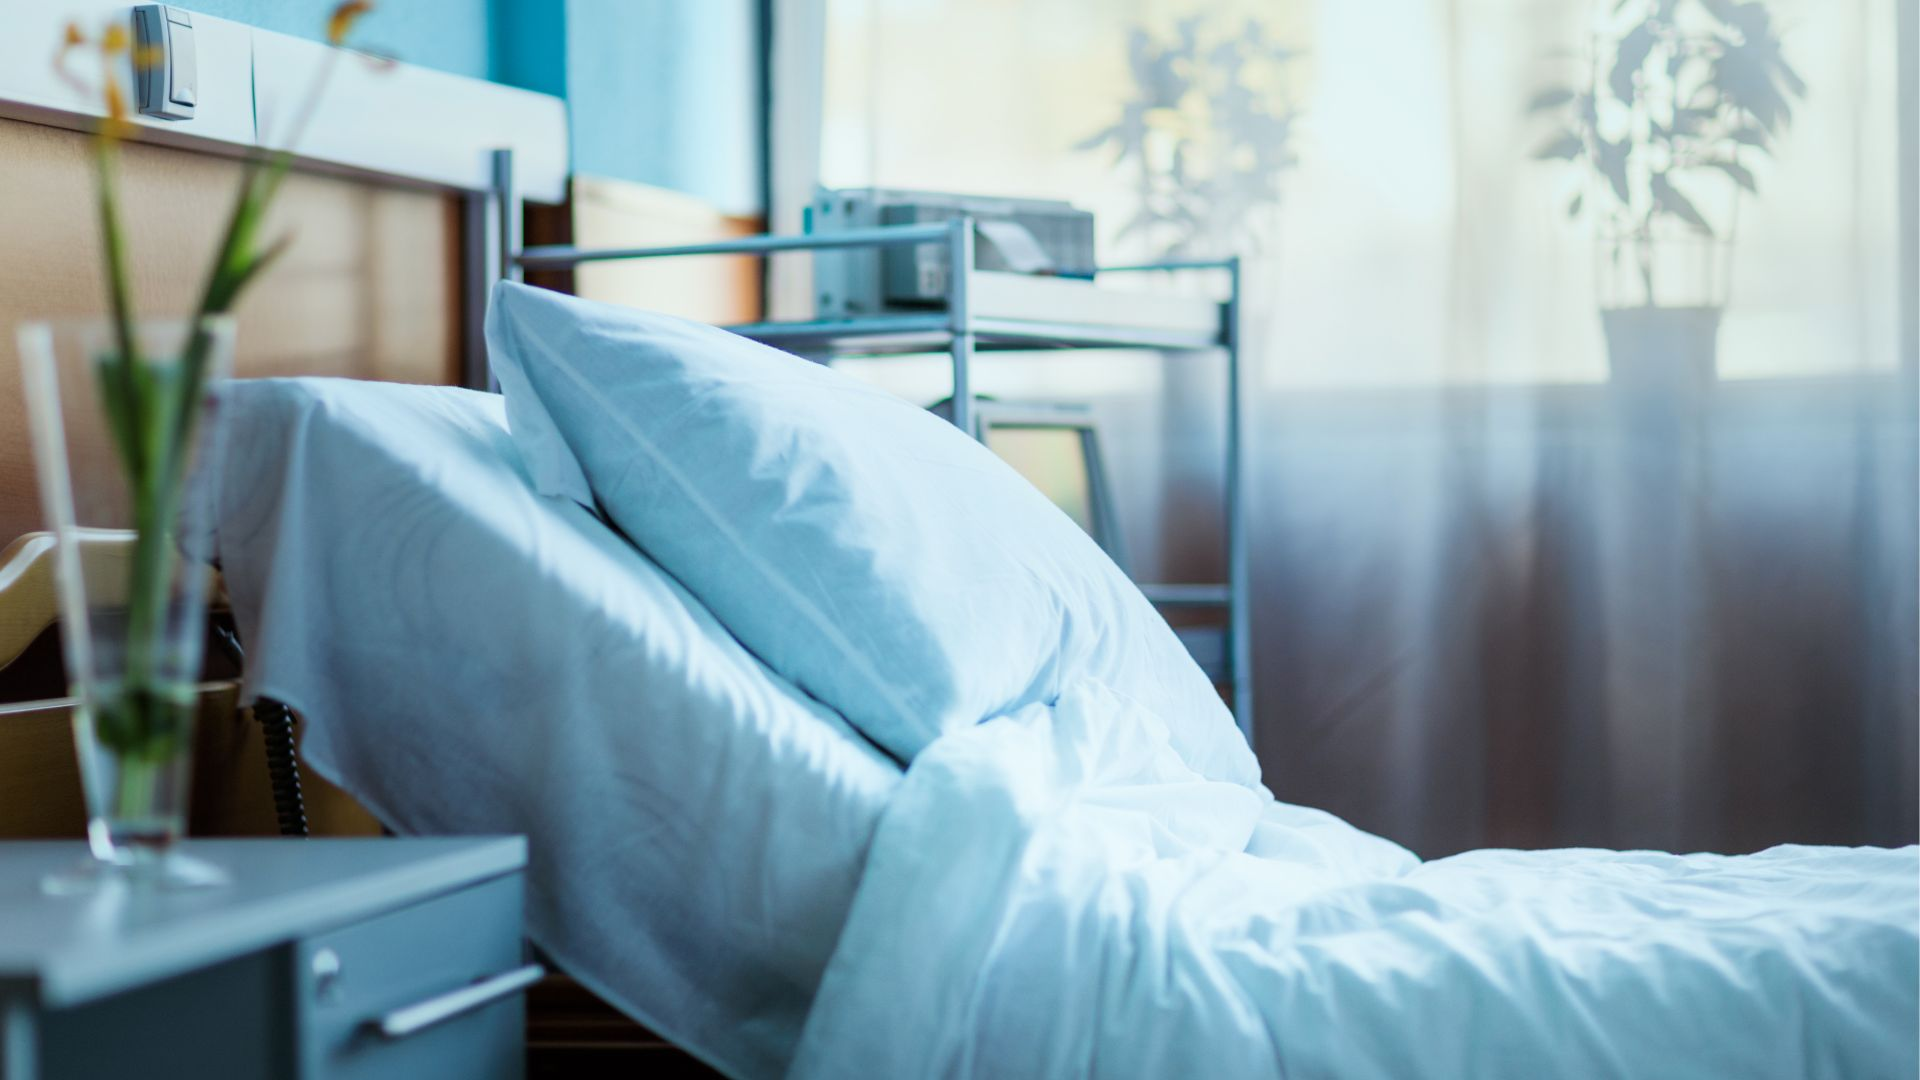 Academics say hospital bed rest can be bad for your health